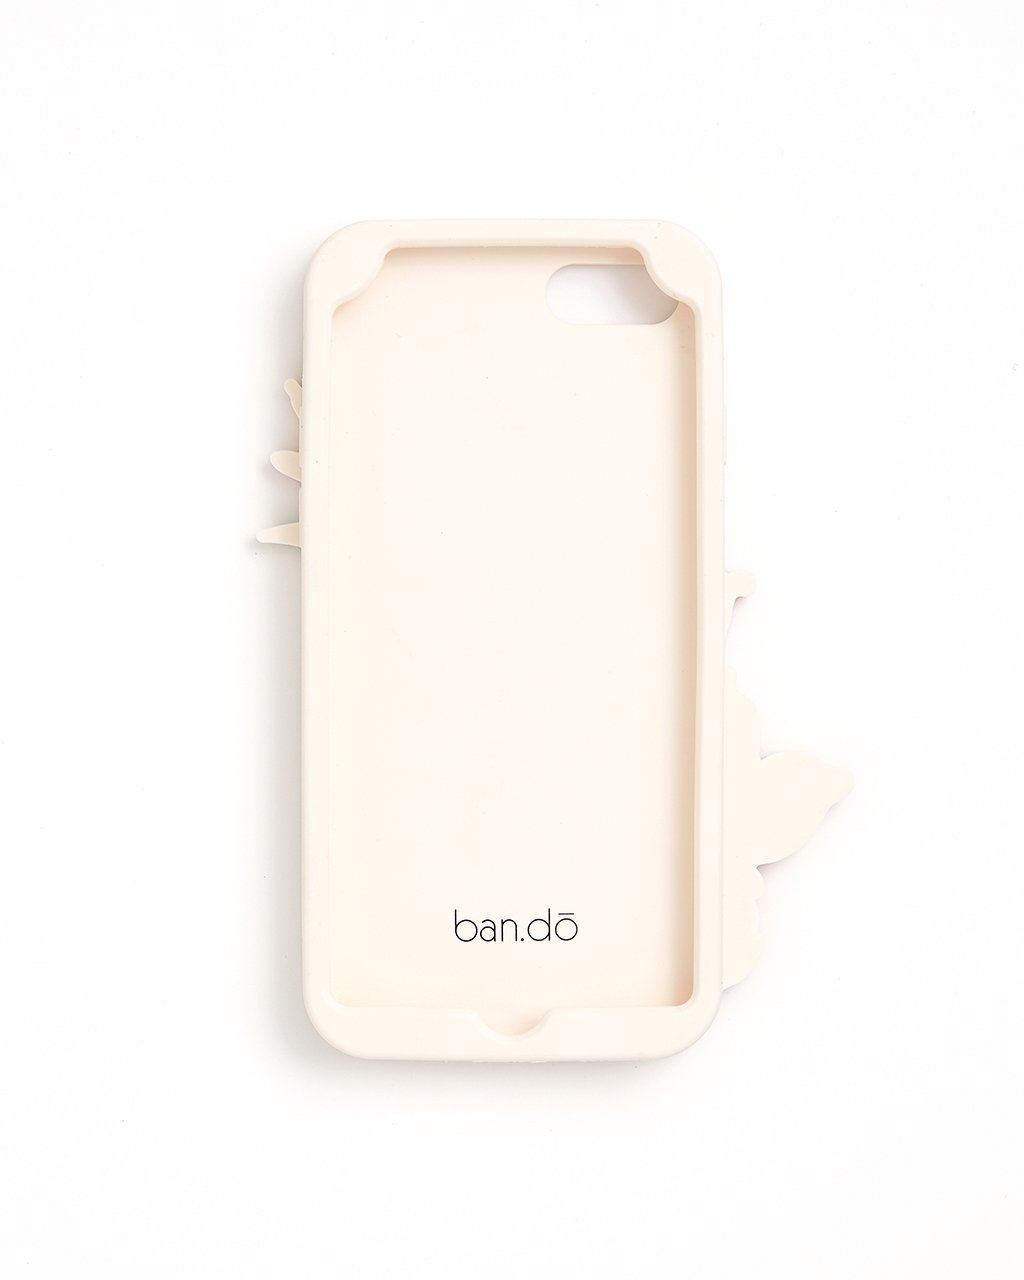 Interior view of ivory silicone iphone case with the ban.do logo